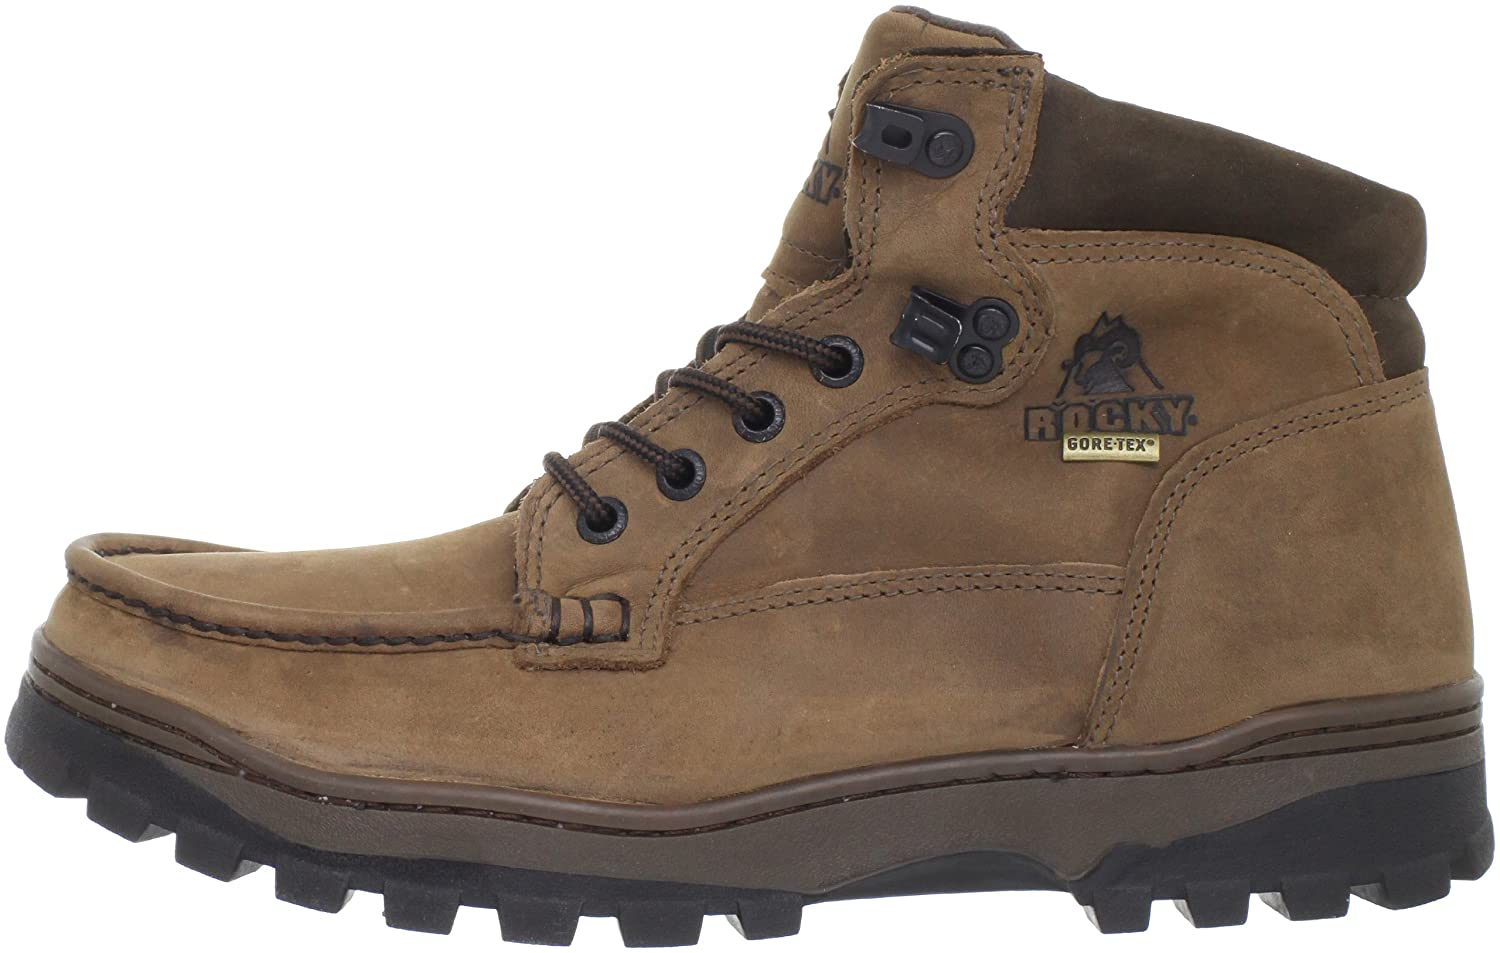 Amazon.com: Rocky Outback Gore-TEX Waterproof Hiker Boot: Everything ...